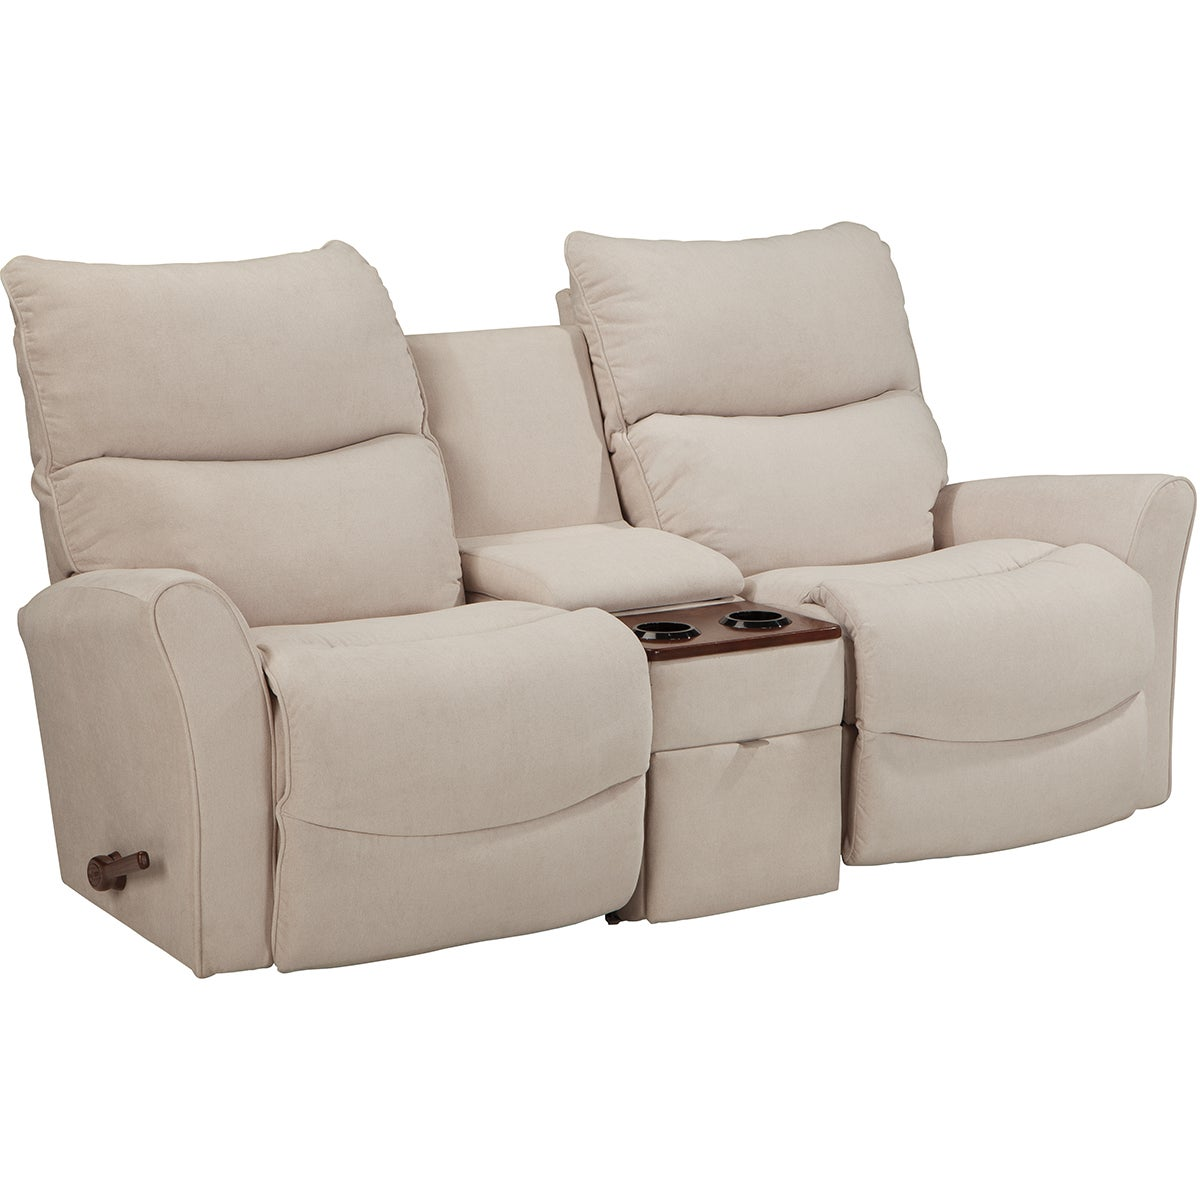 Lazyboy Sectional Sofa Lazy Boy Sectional Couch 6